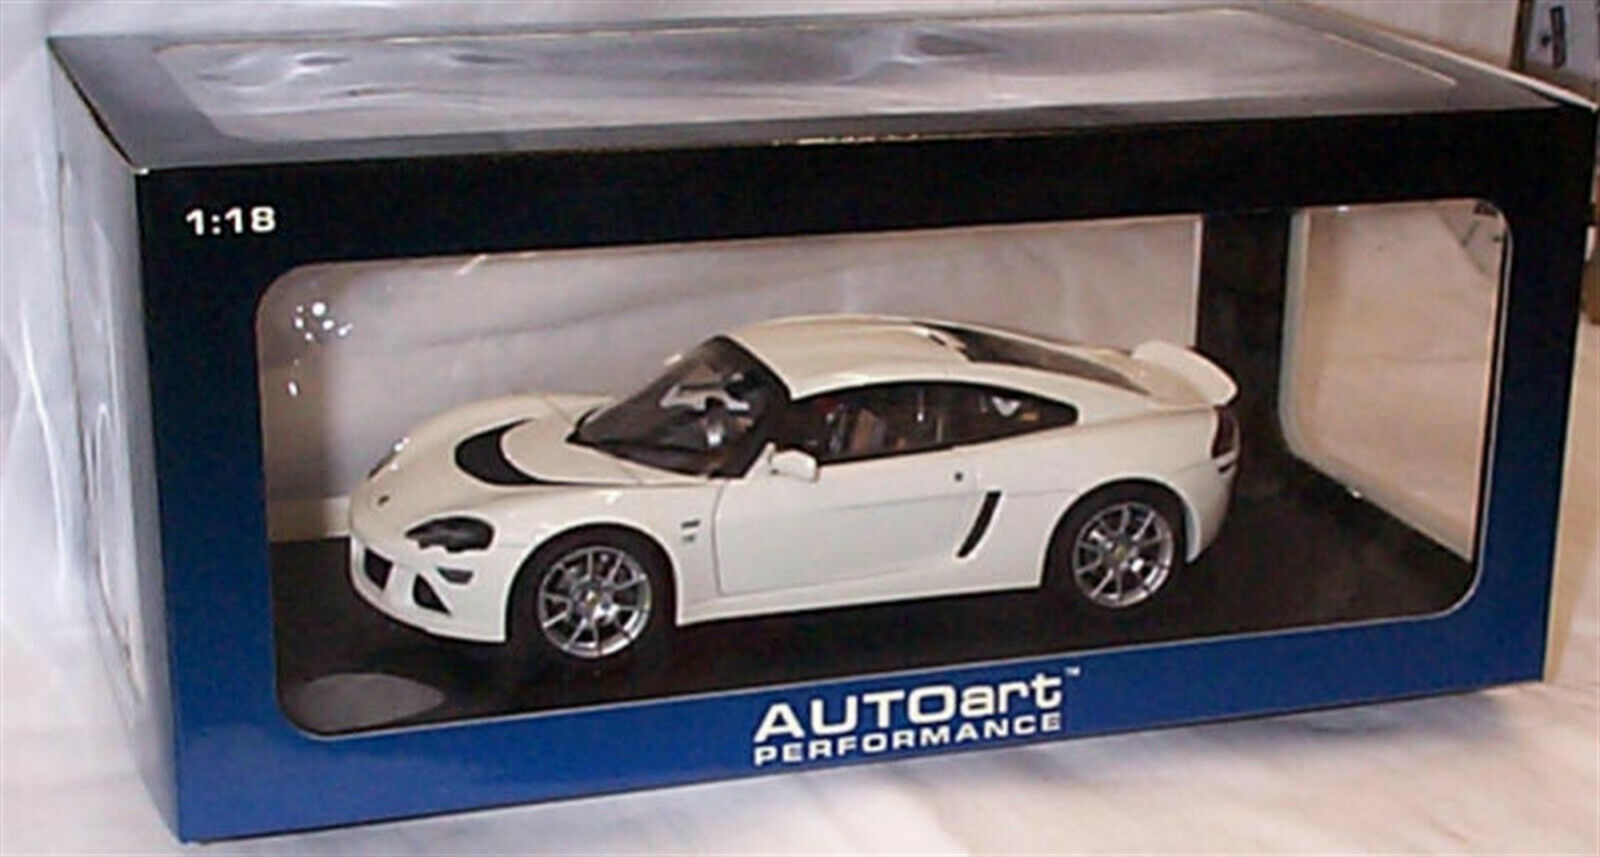 LOTUS EUROPA S Blanc AUTOART 75368 RHD New in Box 1-18 Scale ouverture Pièces